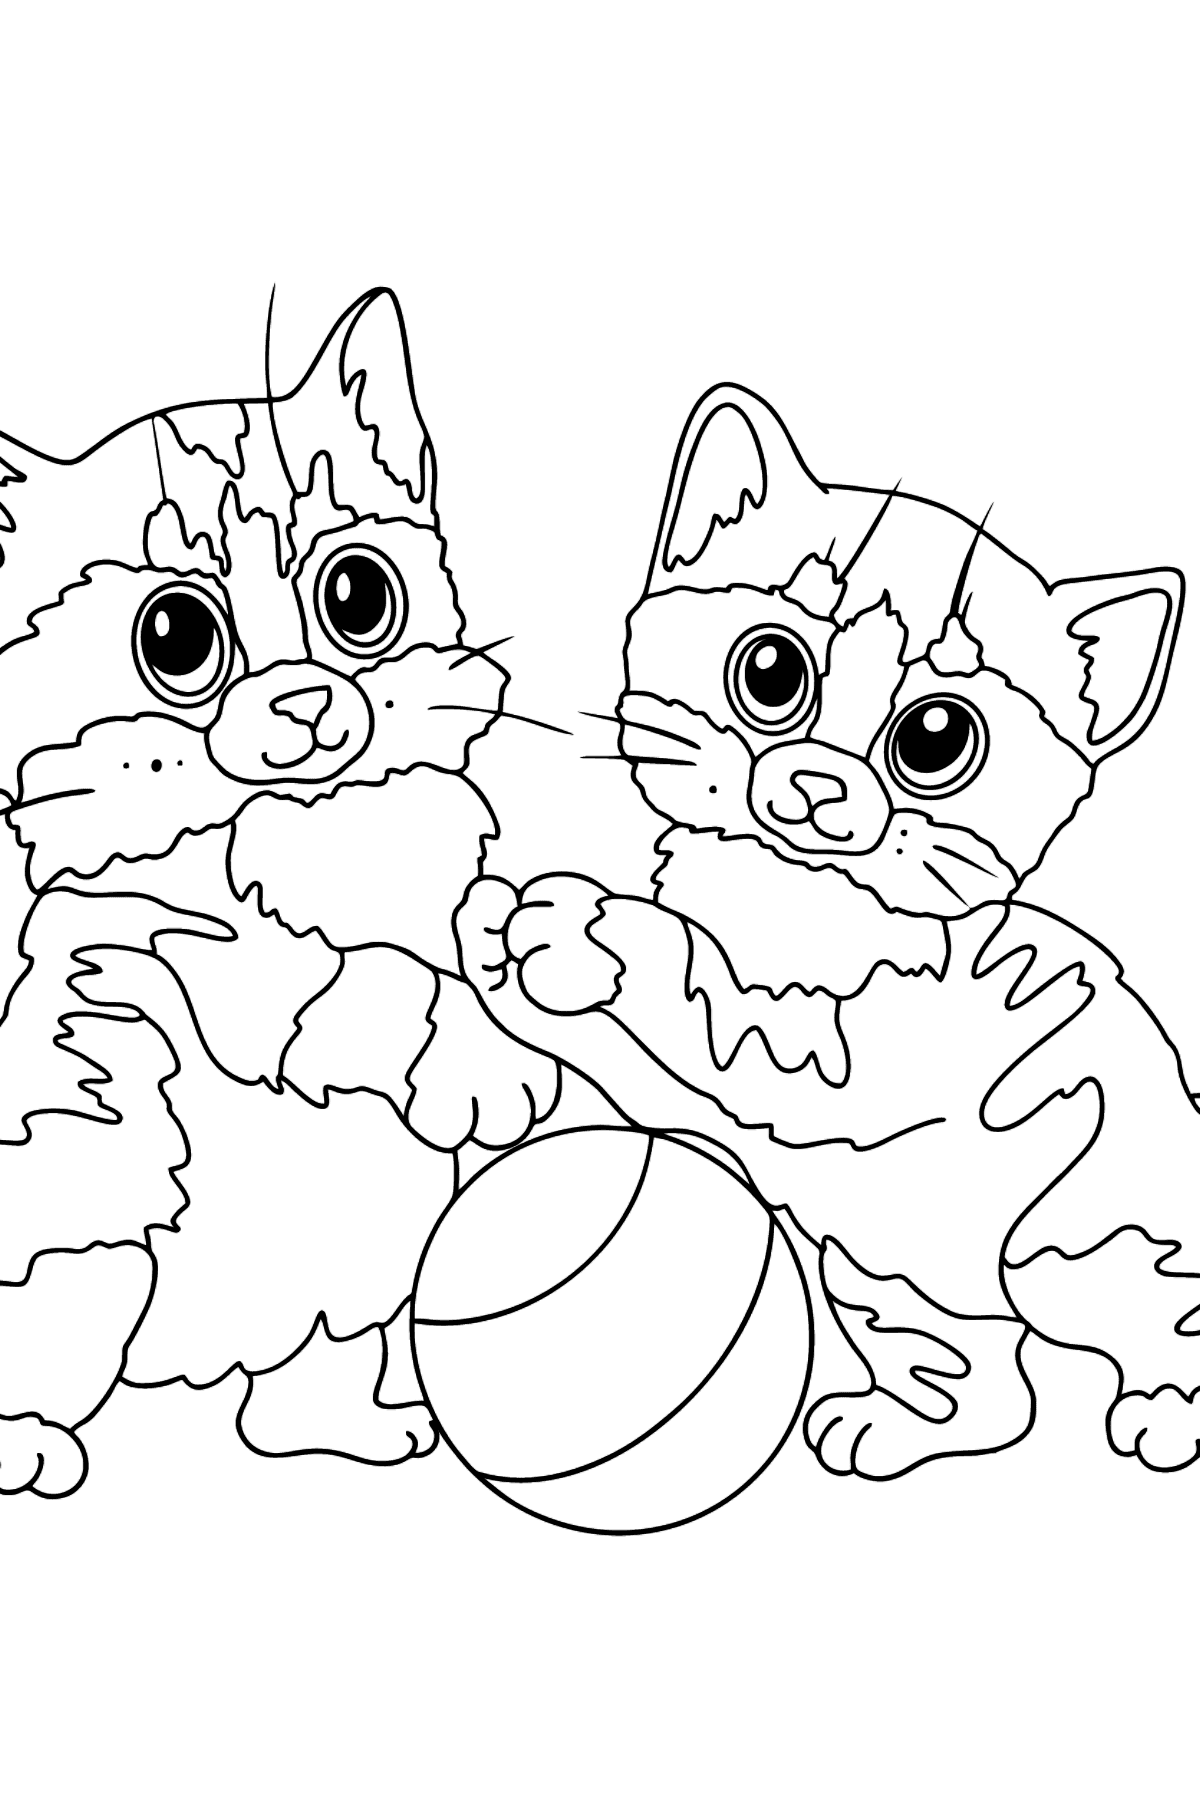 Coloring Page - Kittens are Having Fun with a Ball - Coloring Pages for Kids